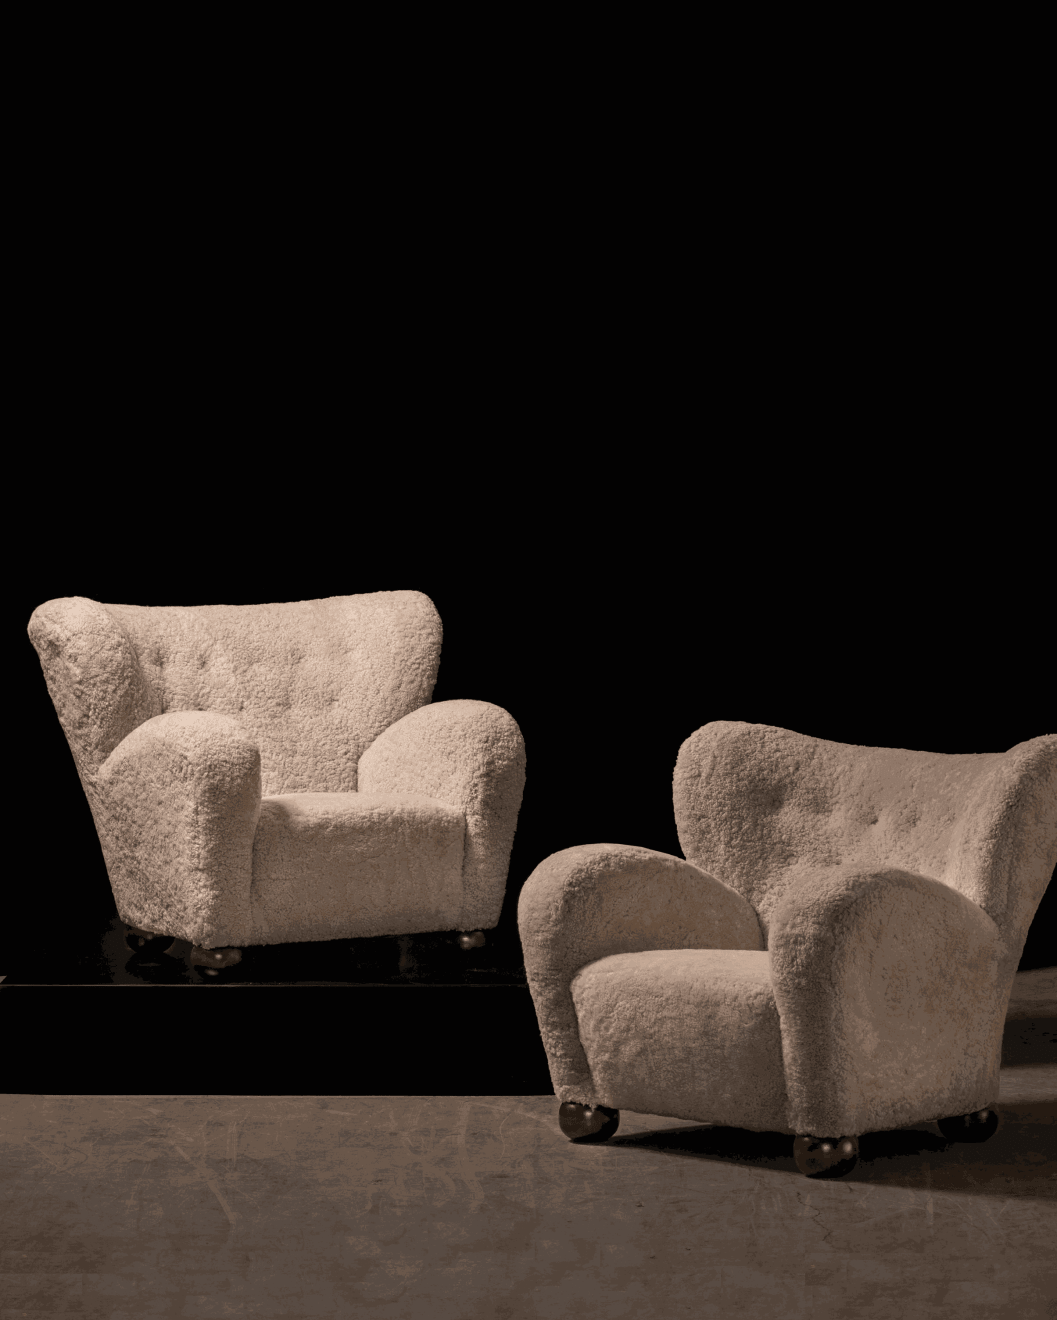 Marta Blomstedt, A Pair of Lounge Chairs, c. 1939